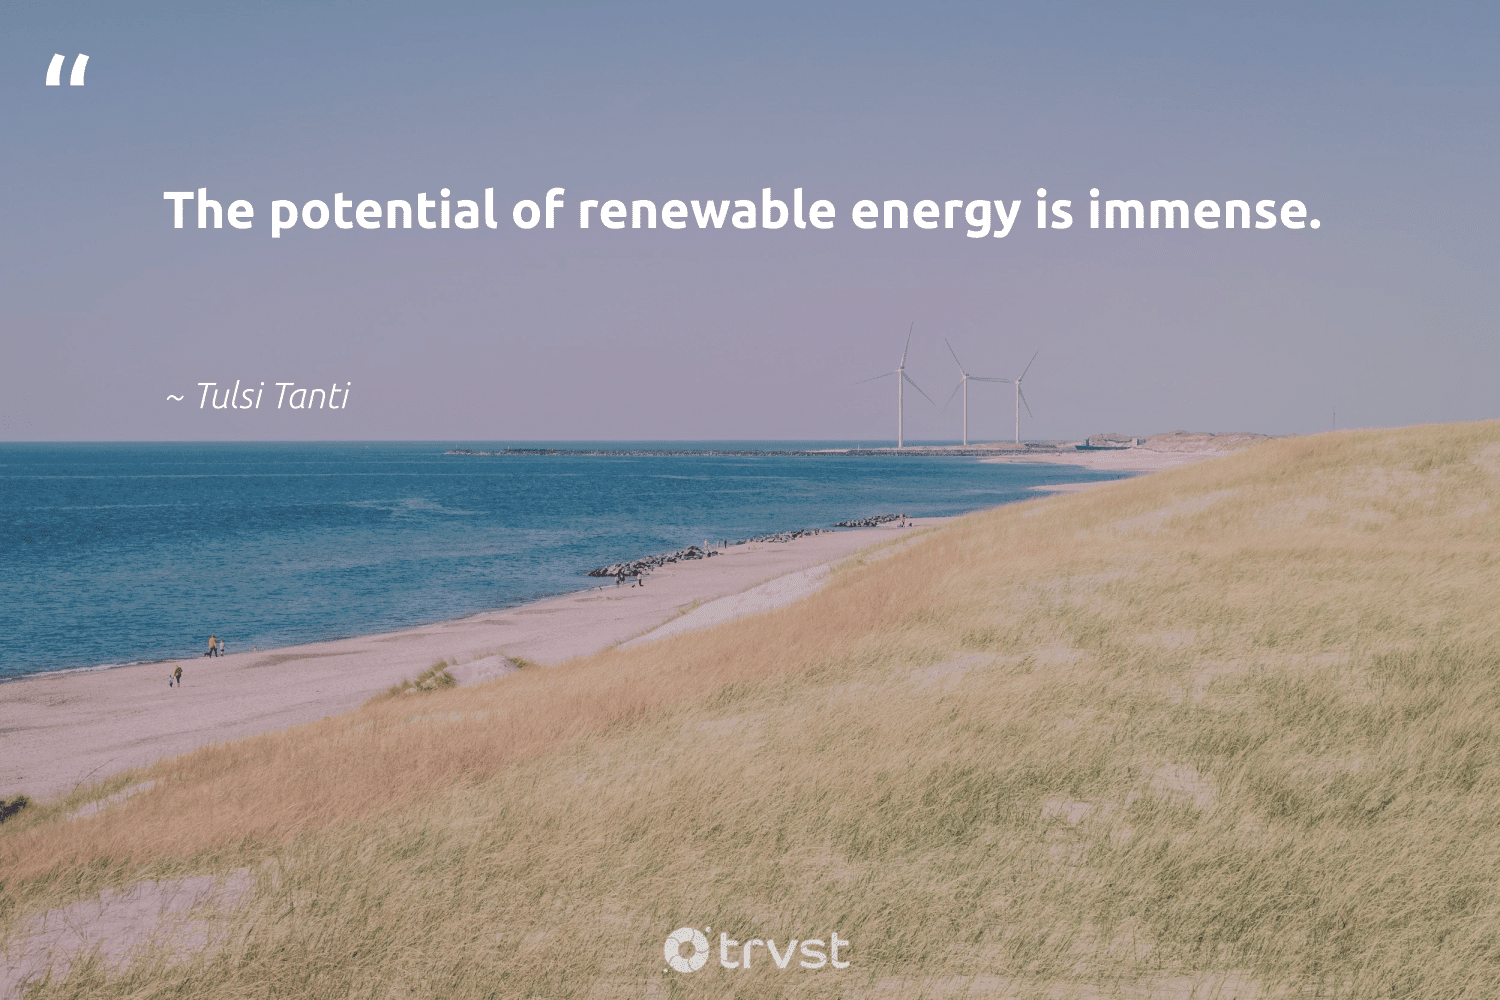 """""""The potential of renewable energy is immense.""""  - Tulsi Tanti #trvst #quotes #renewableenergy #energy #renewable #renewables #100percentrenewable #livegreen #parisagreement #impact #lowcarbon #greenenergy"""